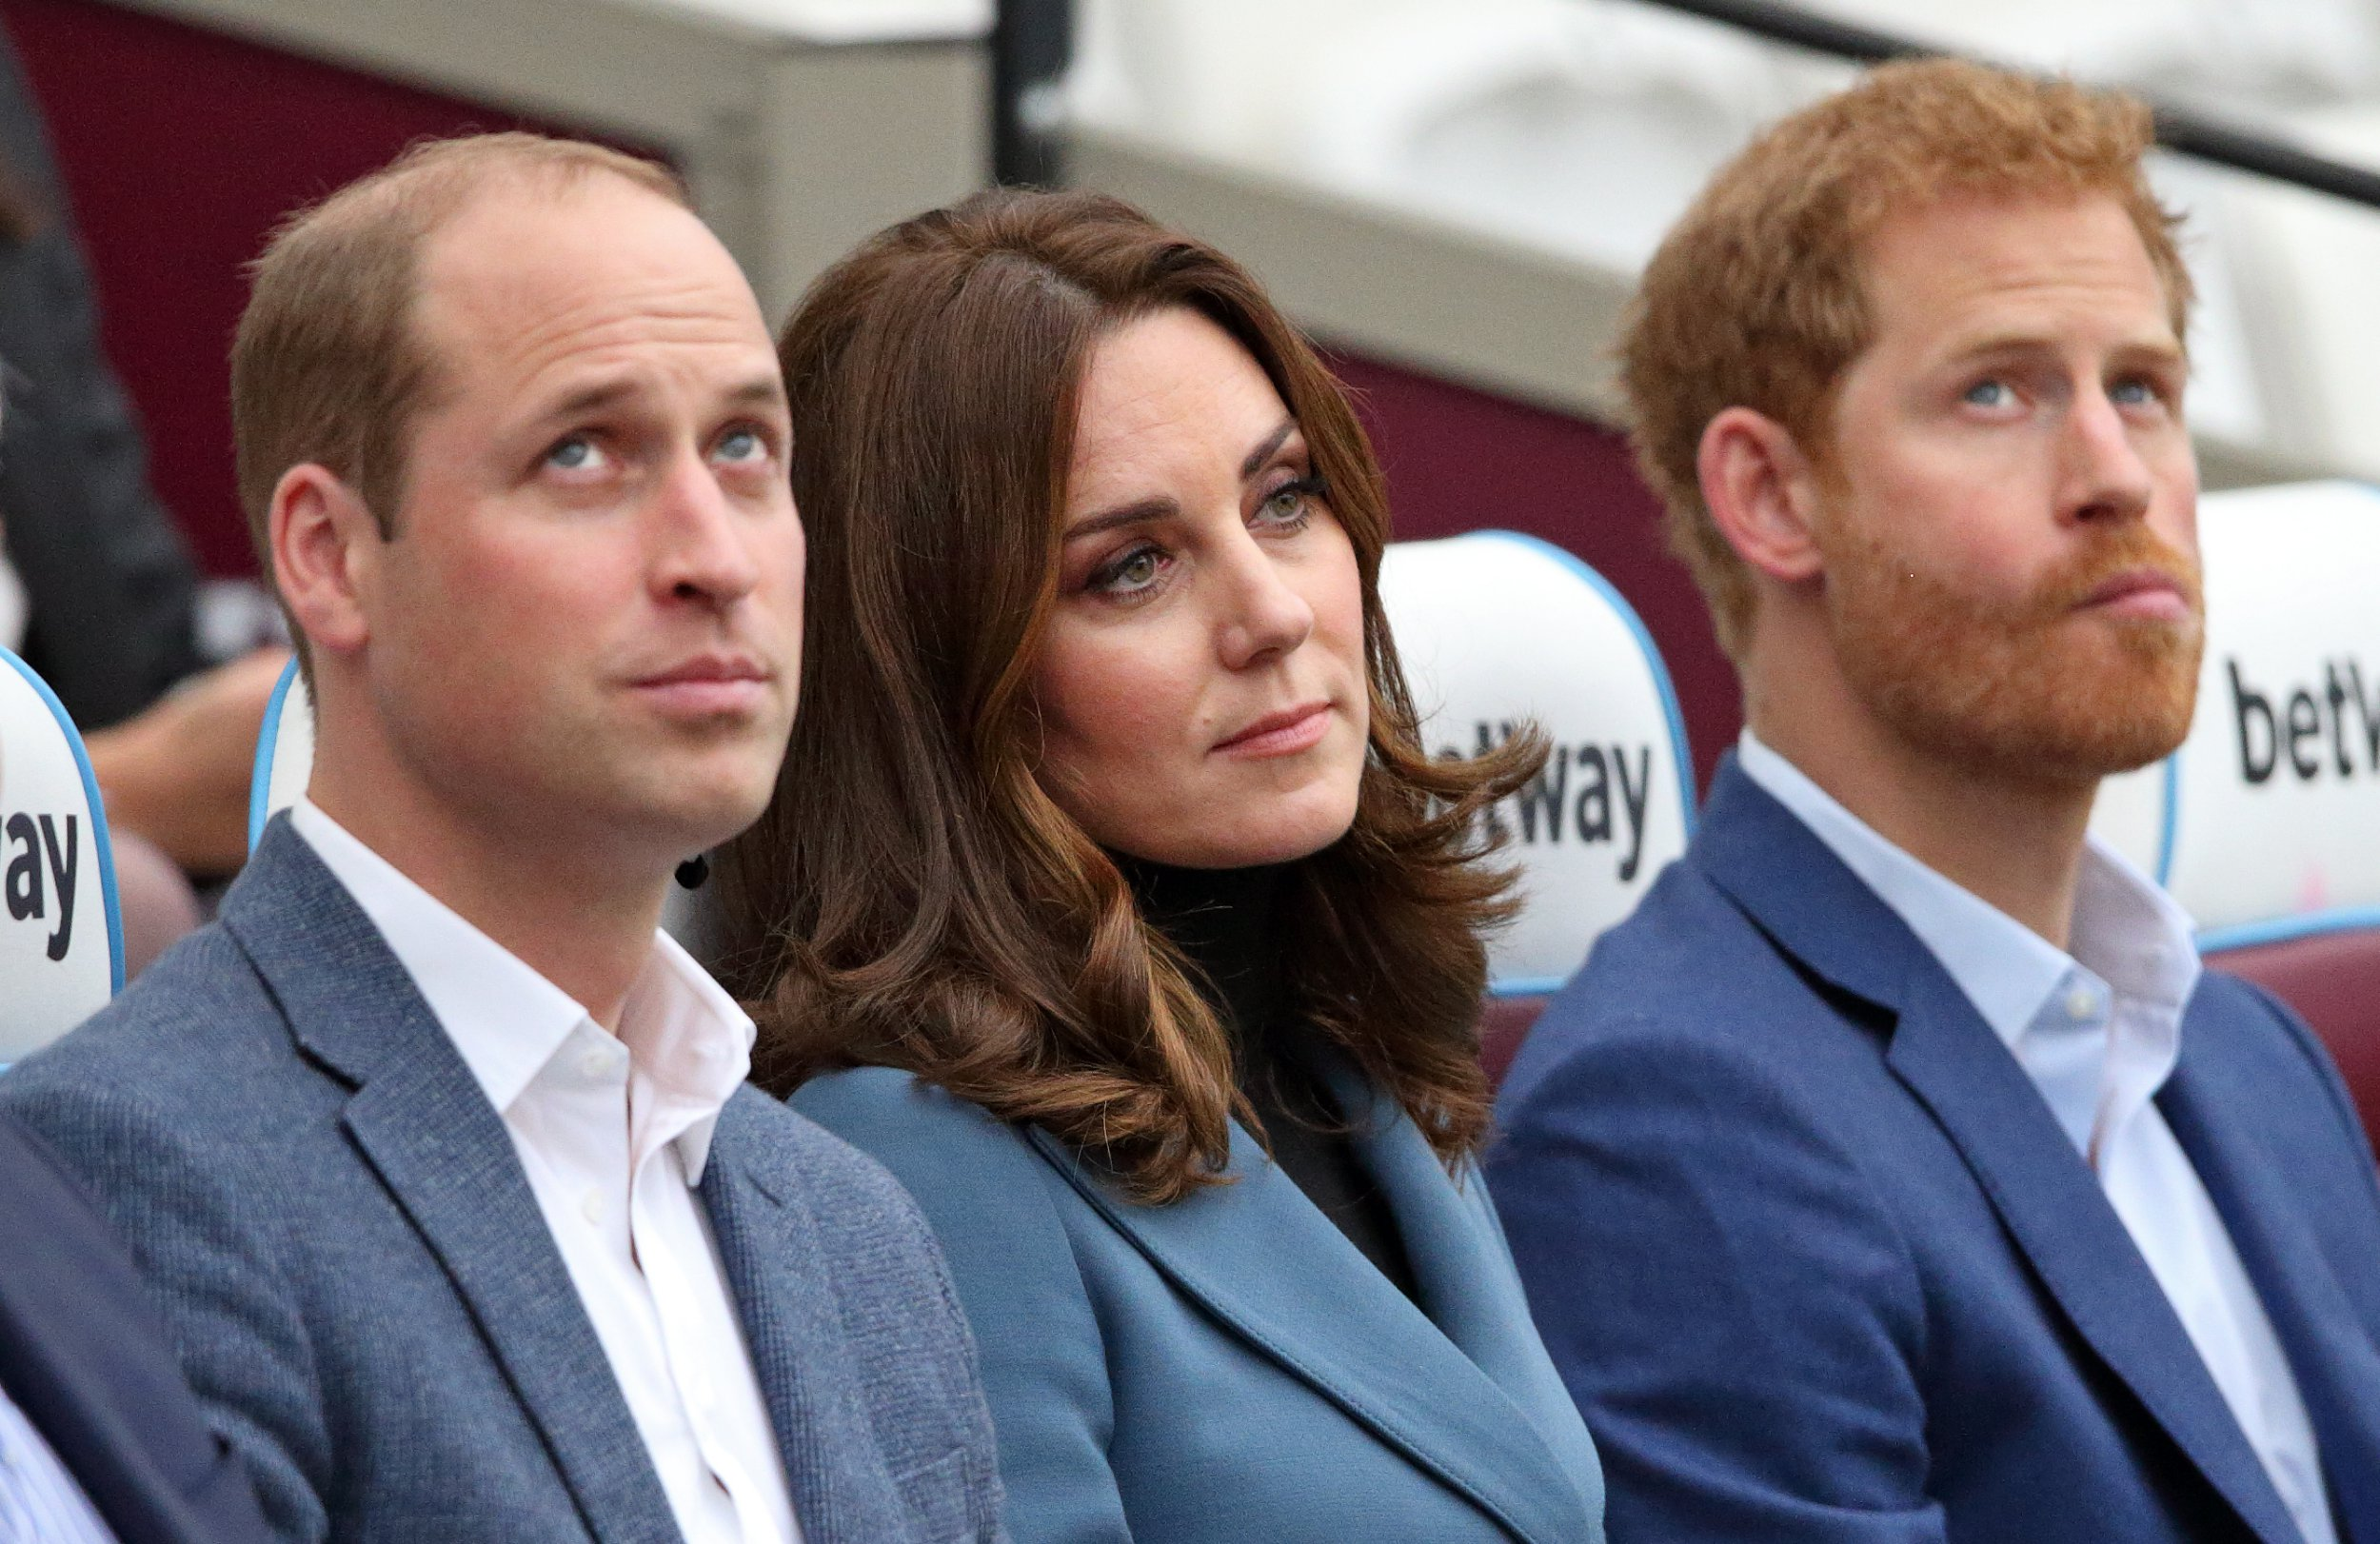 LONDON, UNITED KINGDOM - OCTOBER 18: (EMBARGOED FOR PUBLICATION IN UK NEWSPAPERS UNTIL 48 HOURS AFTER CREATE DATE AND TIME) Prince William, Duke of Cambridge, Catherine, Duchess of Cambridge and Prince Harry attend the Coach Core graduation ceremony for more than 150 Coach Core apprentices at The London Stadium on October 18, 2017 in London, England. (Photo by Max Mumby/Indigo/Getty Images)